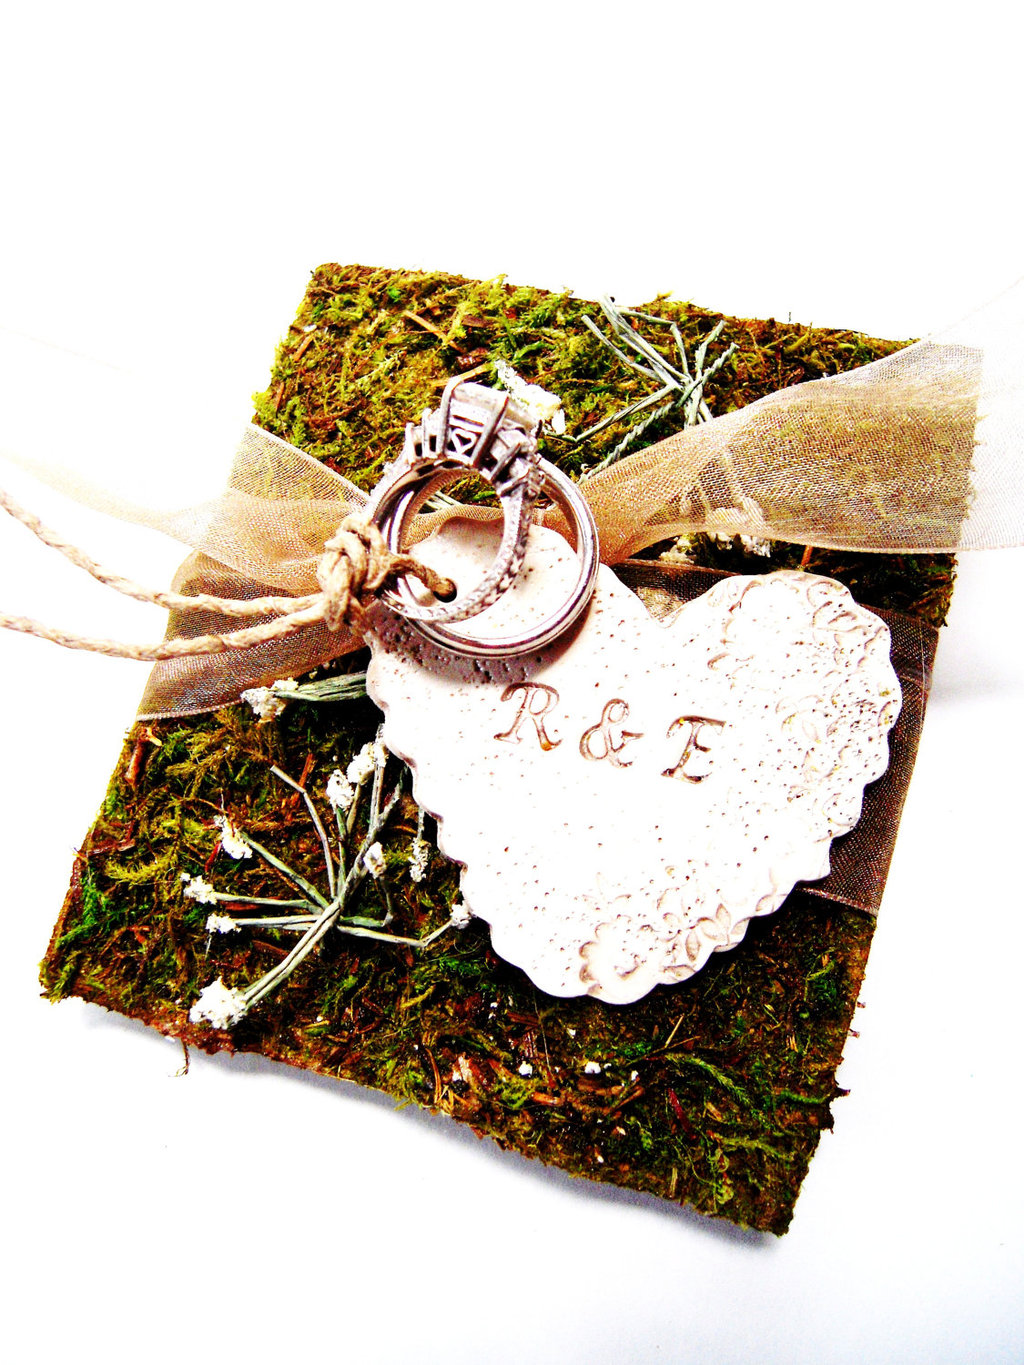 Mossy-ring-bearer-pillow-for-the-wedding-ceremony.full